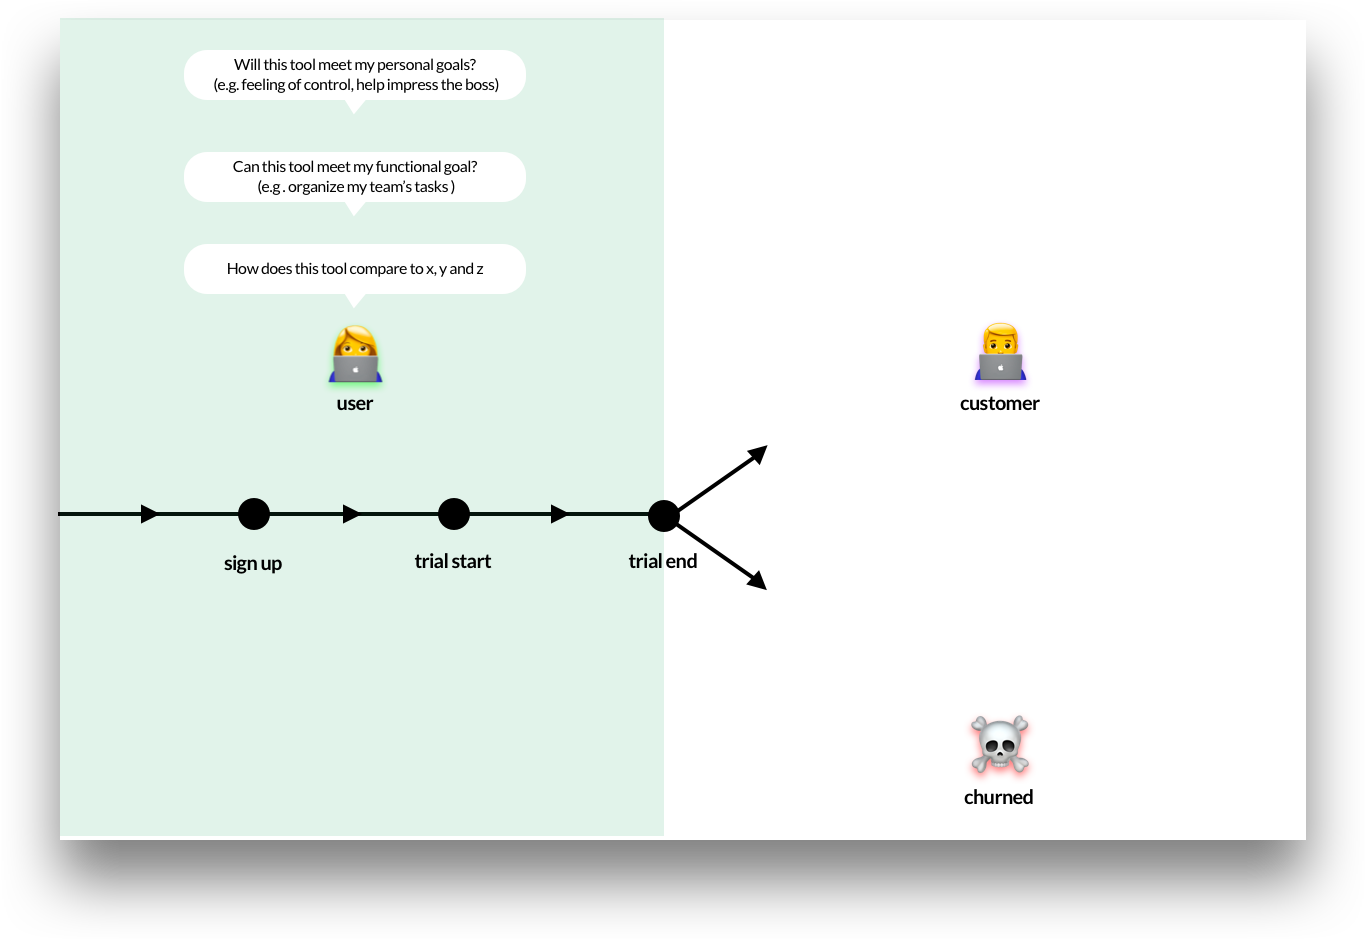 An illustration of the difference between a user and customer. The path of a user shows them going through a sign up, trial, then either becoming a customer or churning, all while evaluating the tool's ability to get the job done.